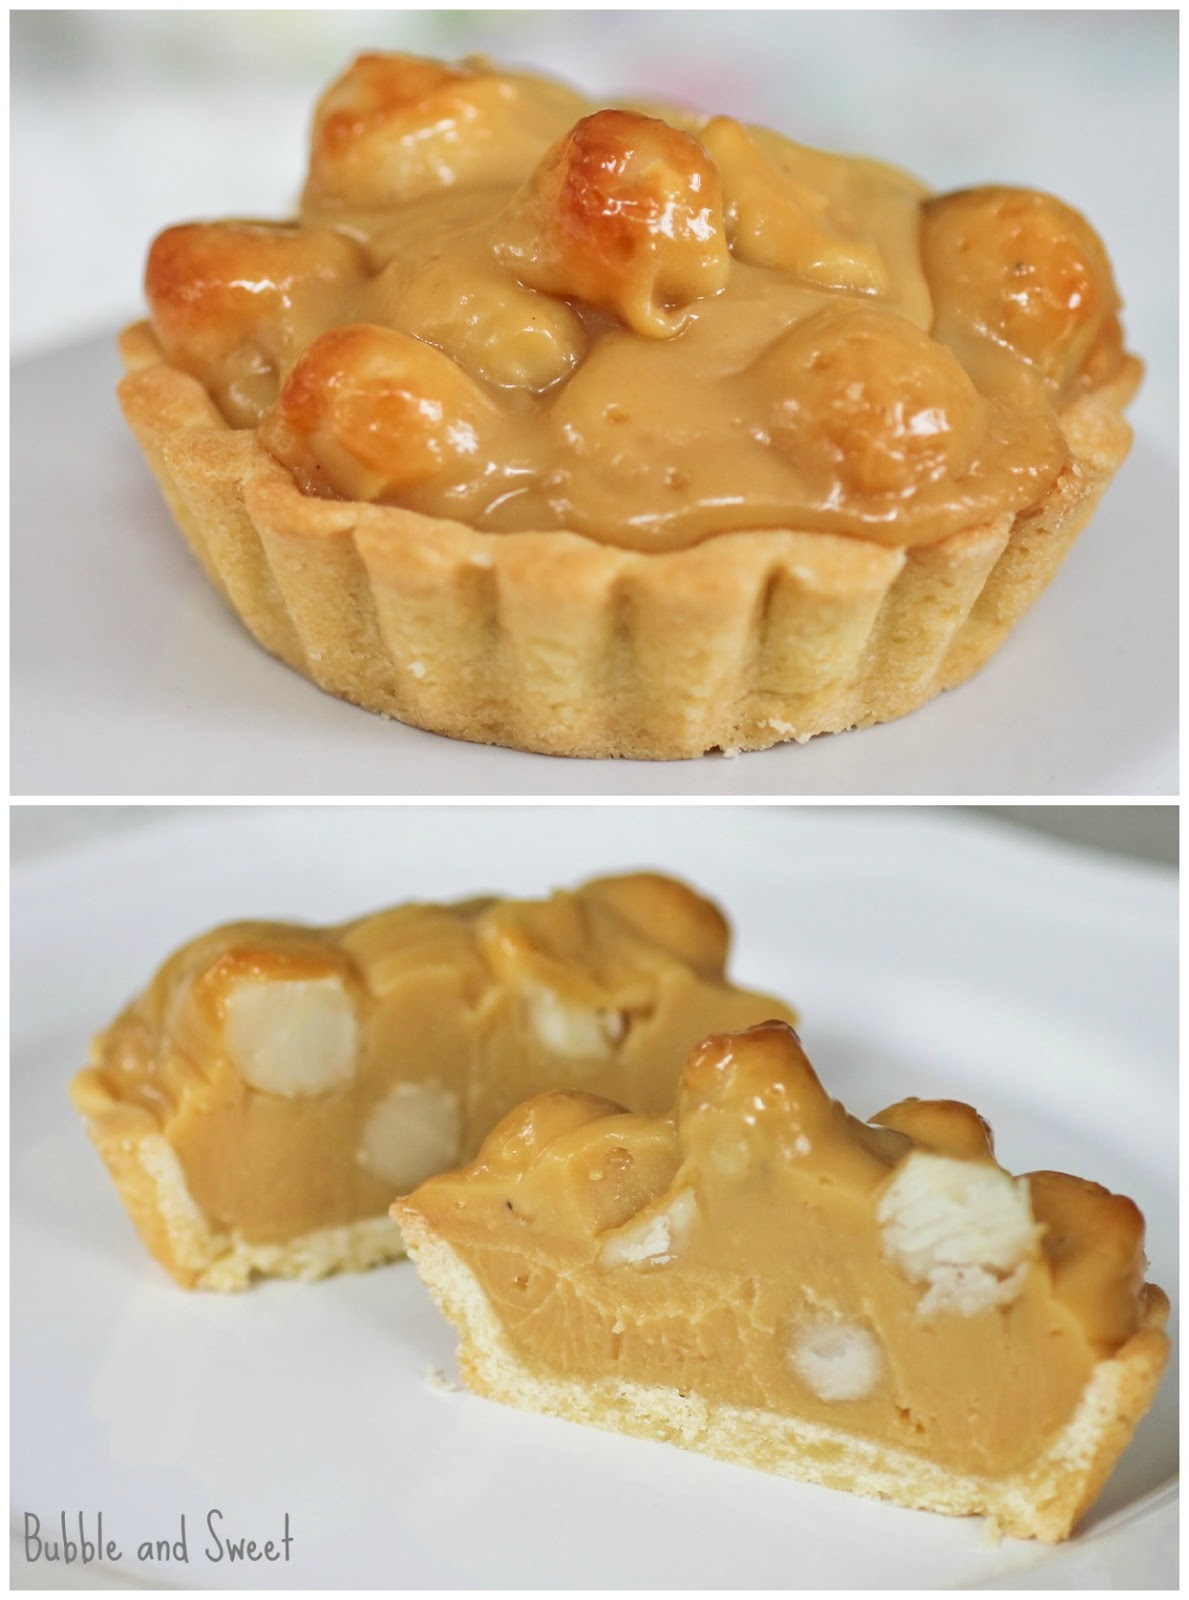 caramel+macadamia+nut+tart+tartlette+pie+recipe+sweet+pastry+shell.jpg